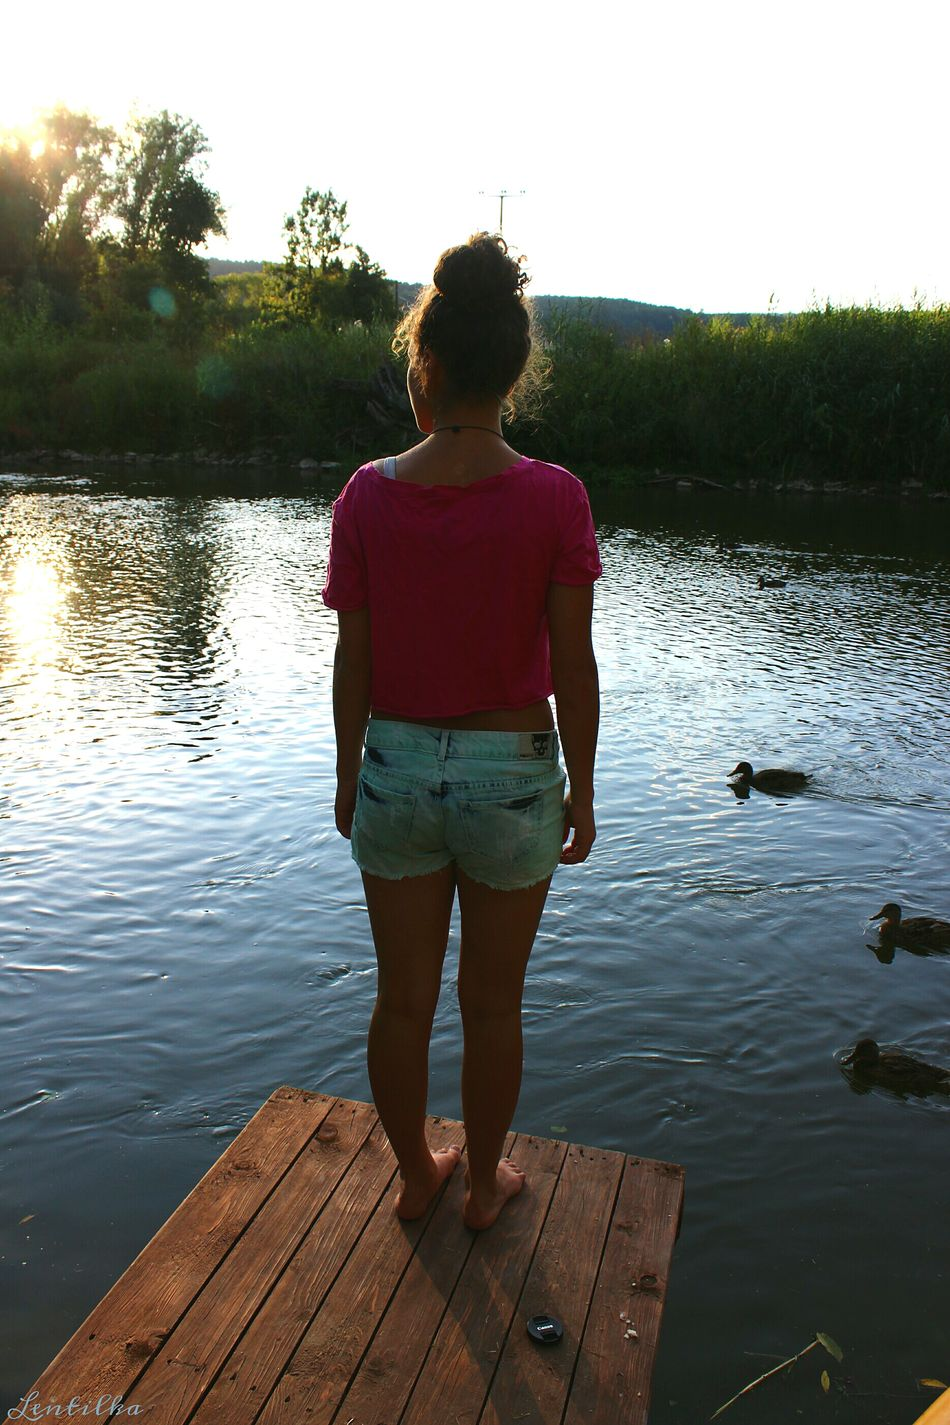 Rear View Lake Reflection One Person Water Nature Sky Tree Full Length People Outdoors Day Beauty In Nature Lentilka Summer Canonphotography Standing Standing Woman EyeEmNewHere Lieblingsteil Women Around The World Long Goodbye